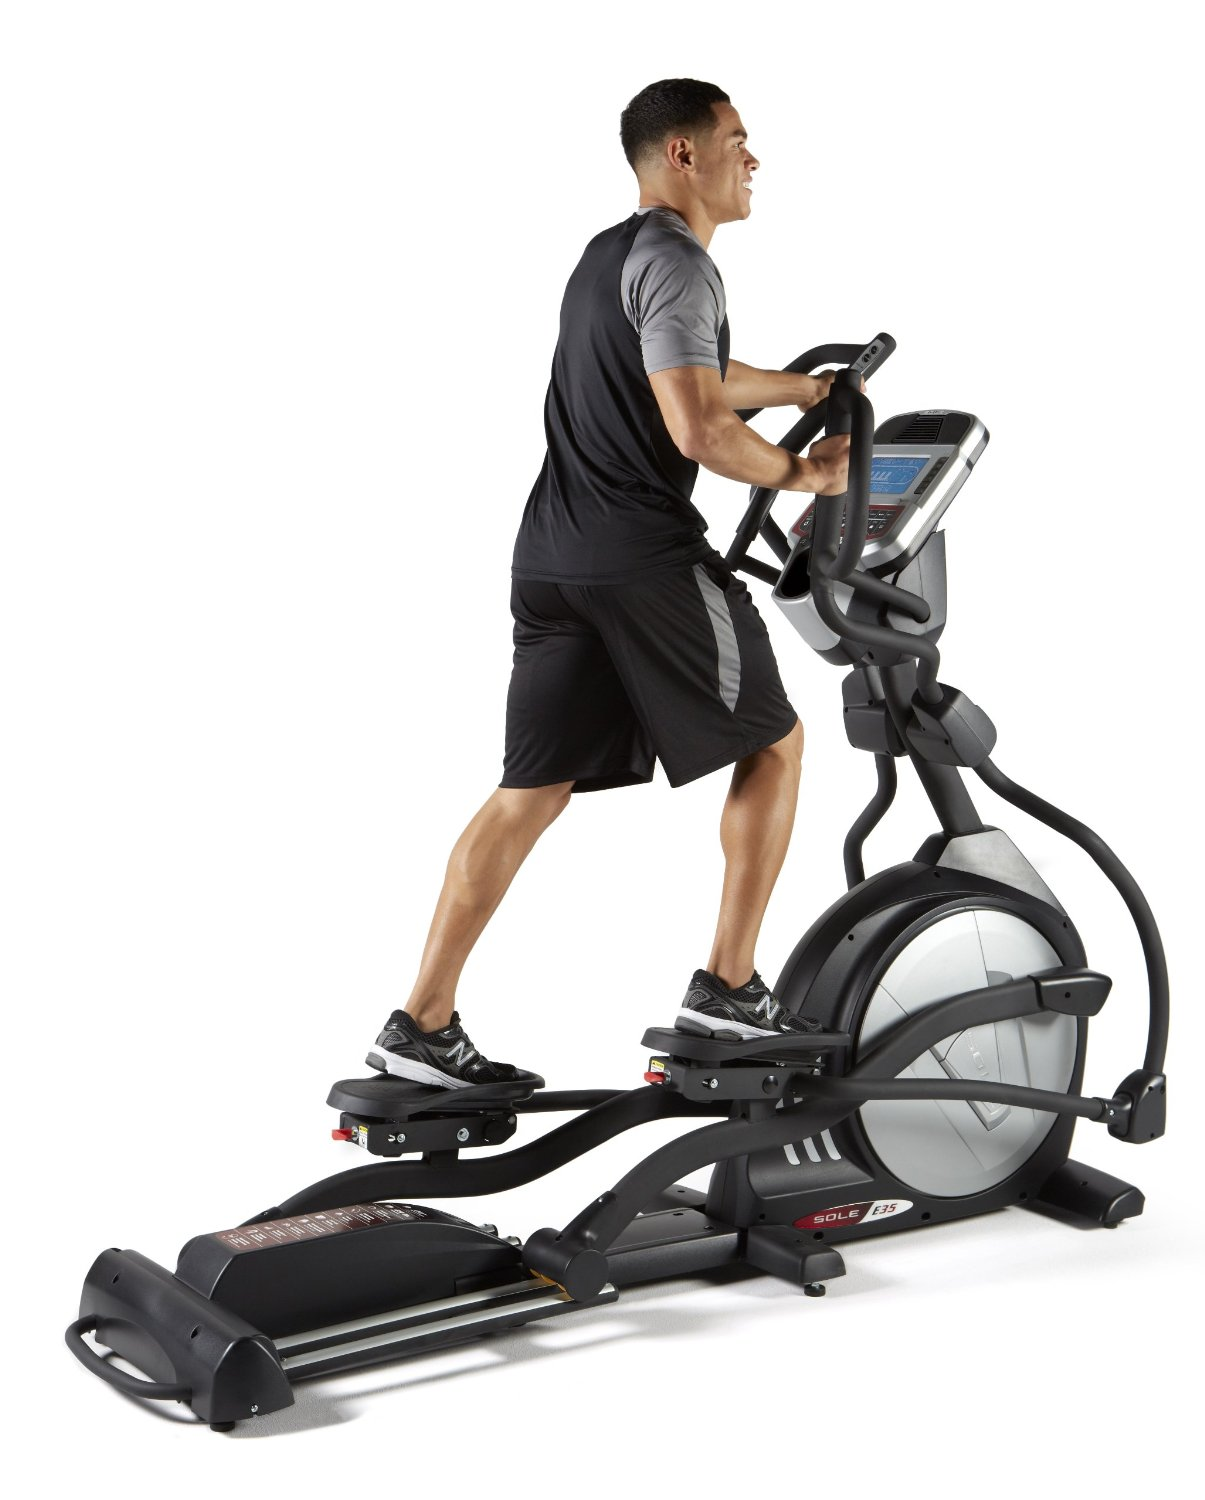 Top 10 best elliptical machine for weight loss In 2019 Reviews